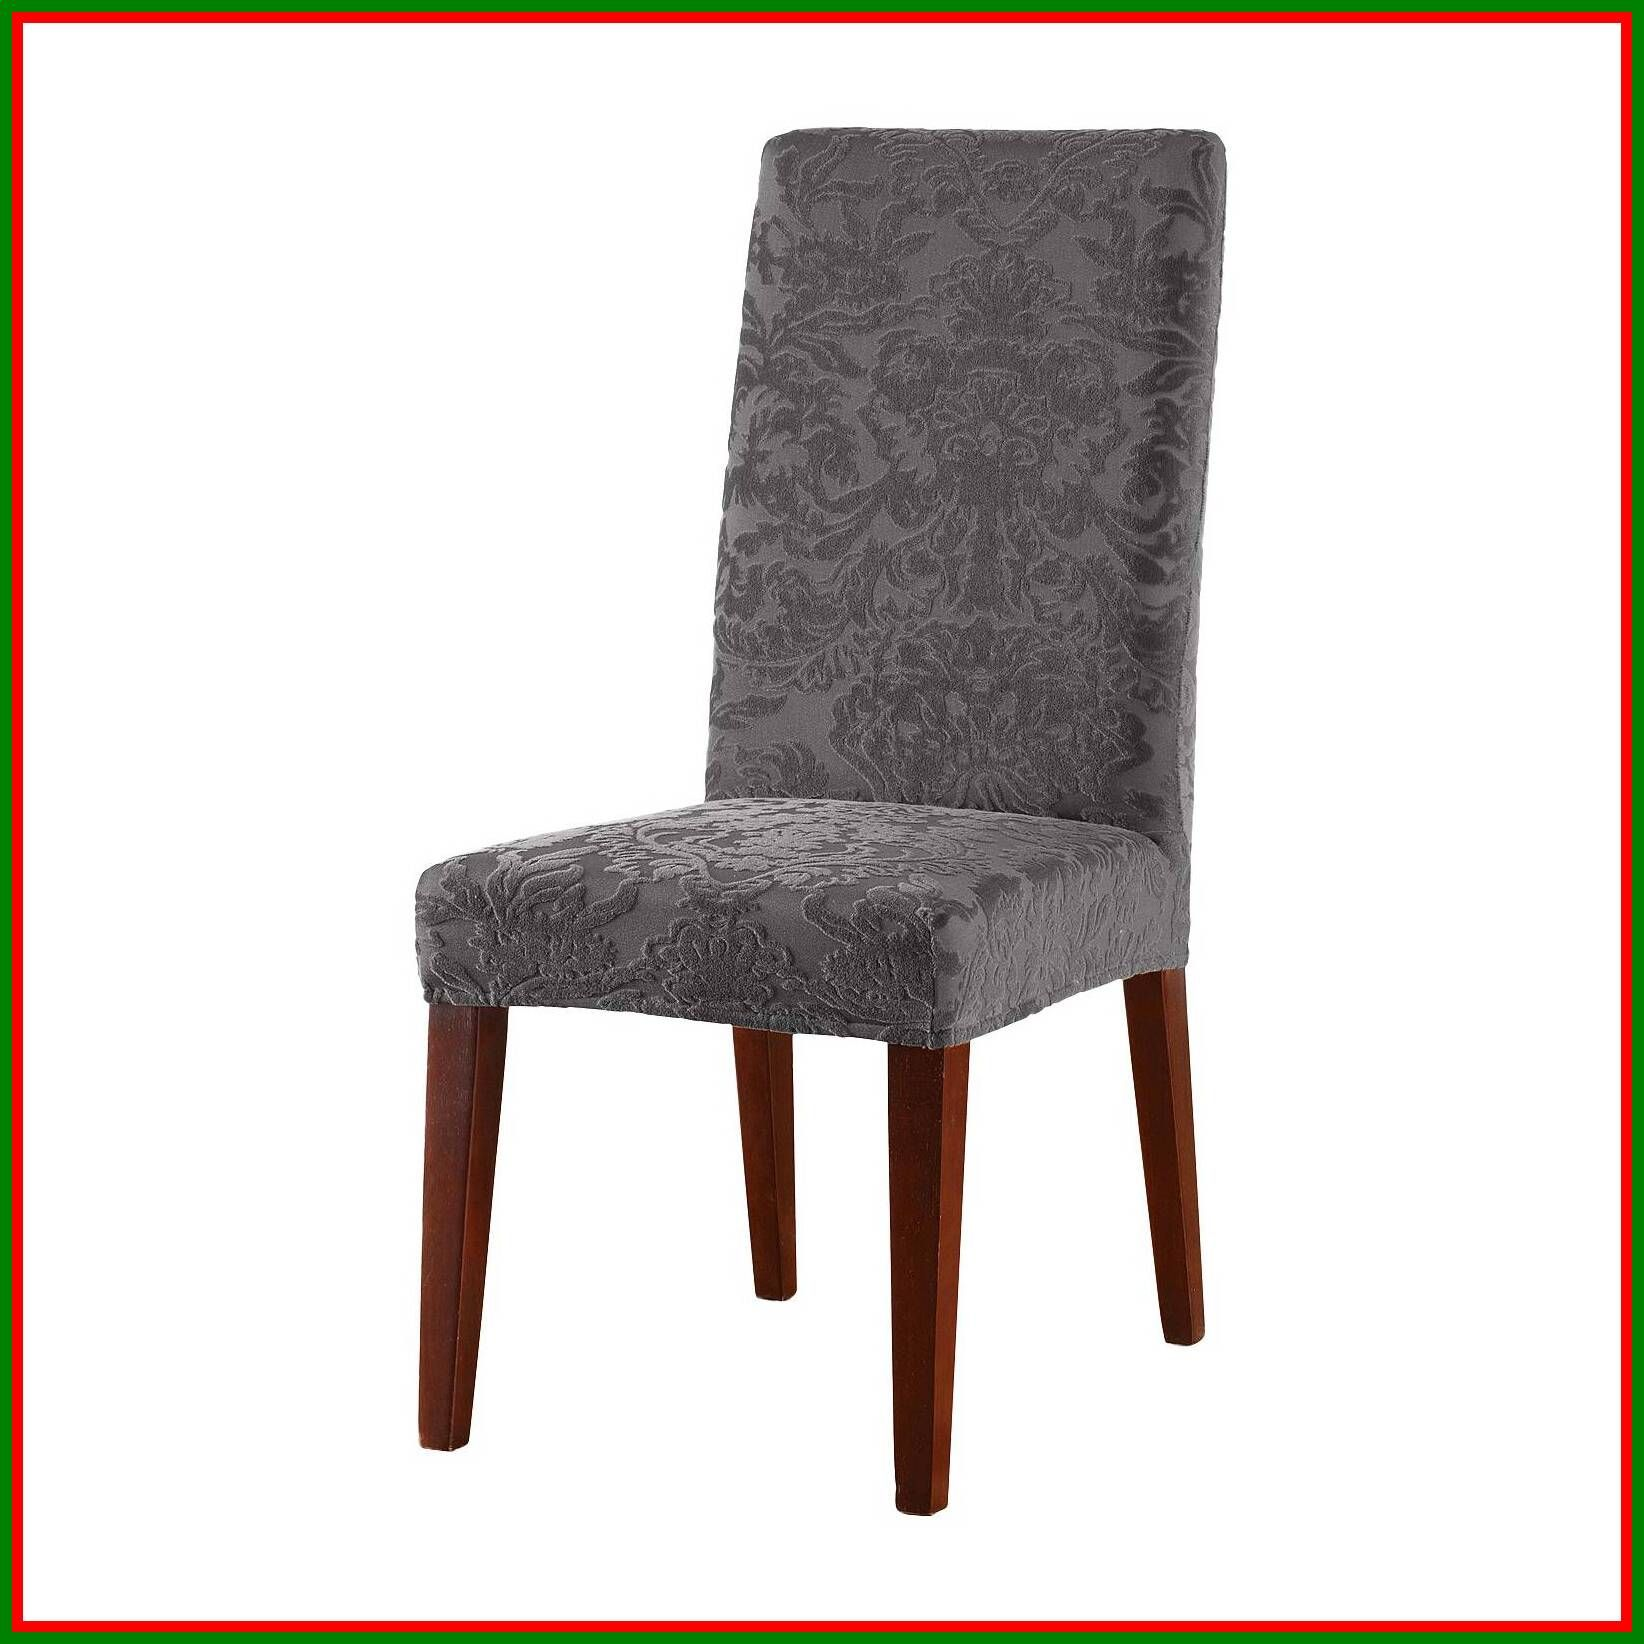 35 Reference Of Chair Covers Short Dining Room In 2020 Dining Room Chair Slipcovers Chair Covers Dining Room Chair Covers